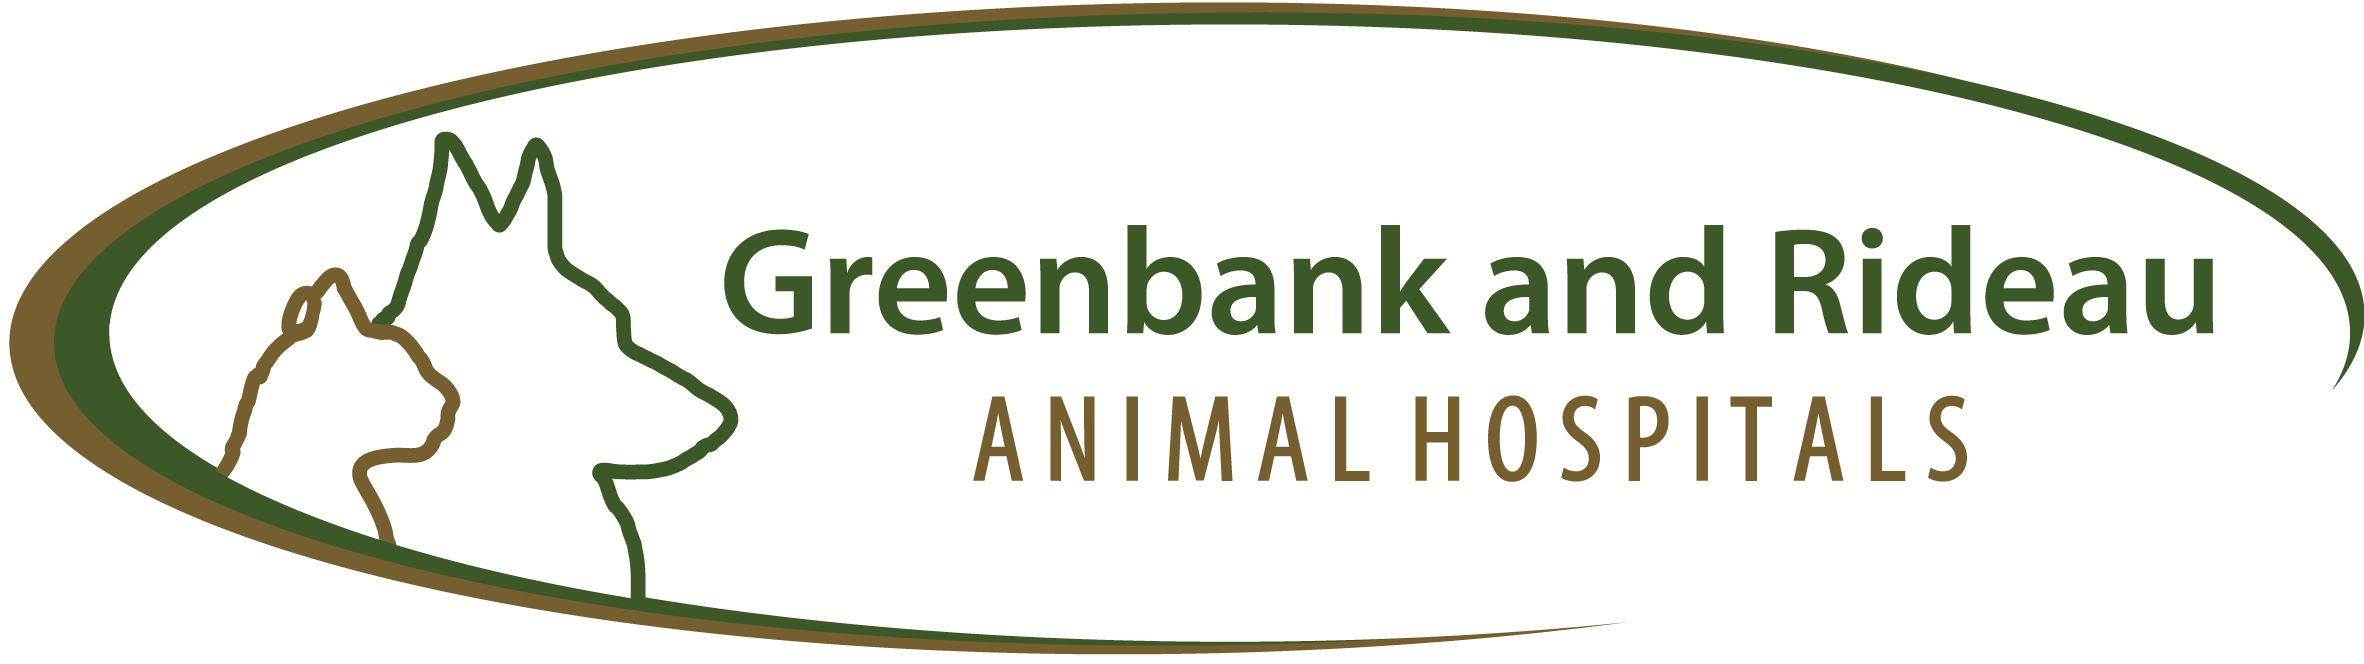 Greenbank & Rideau Animal Hospitals Logo